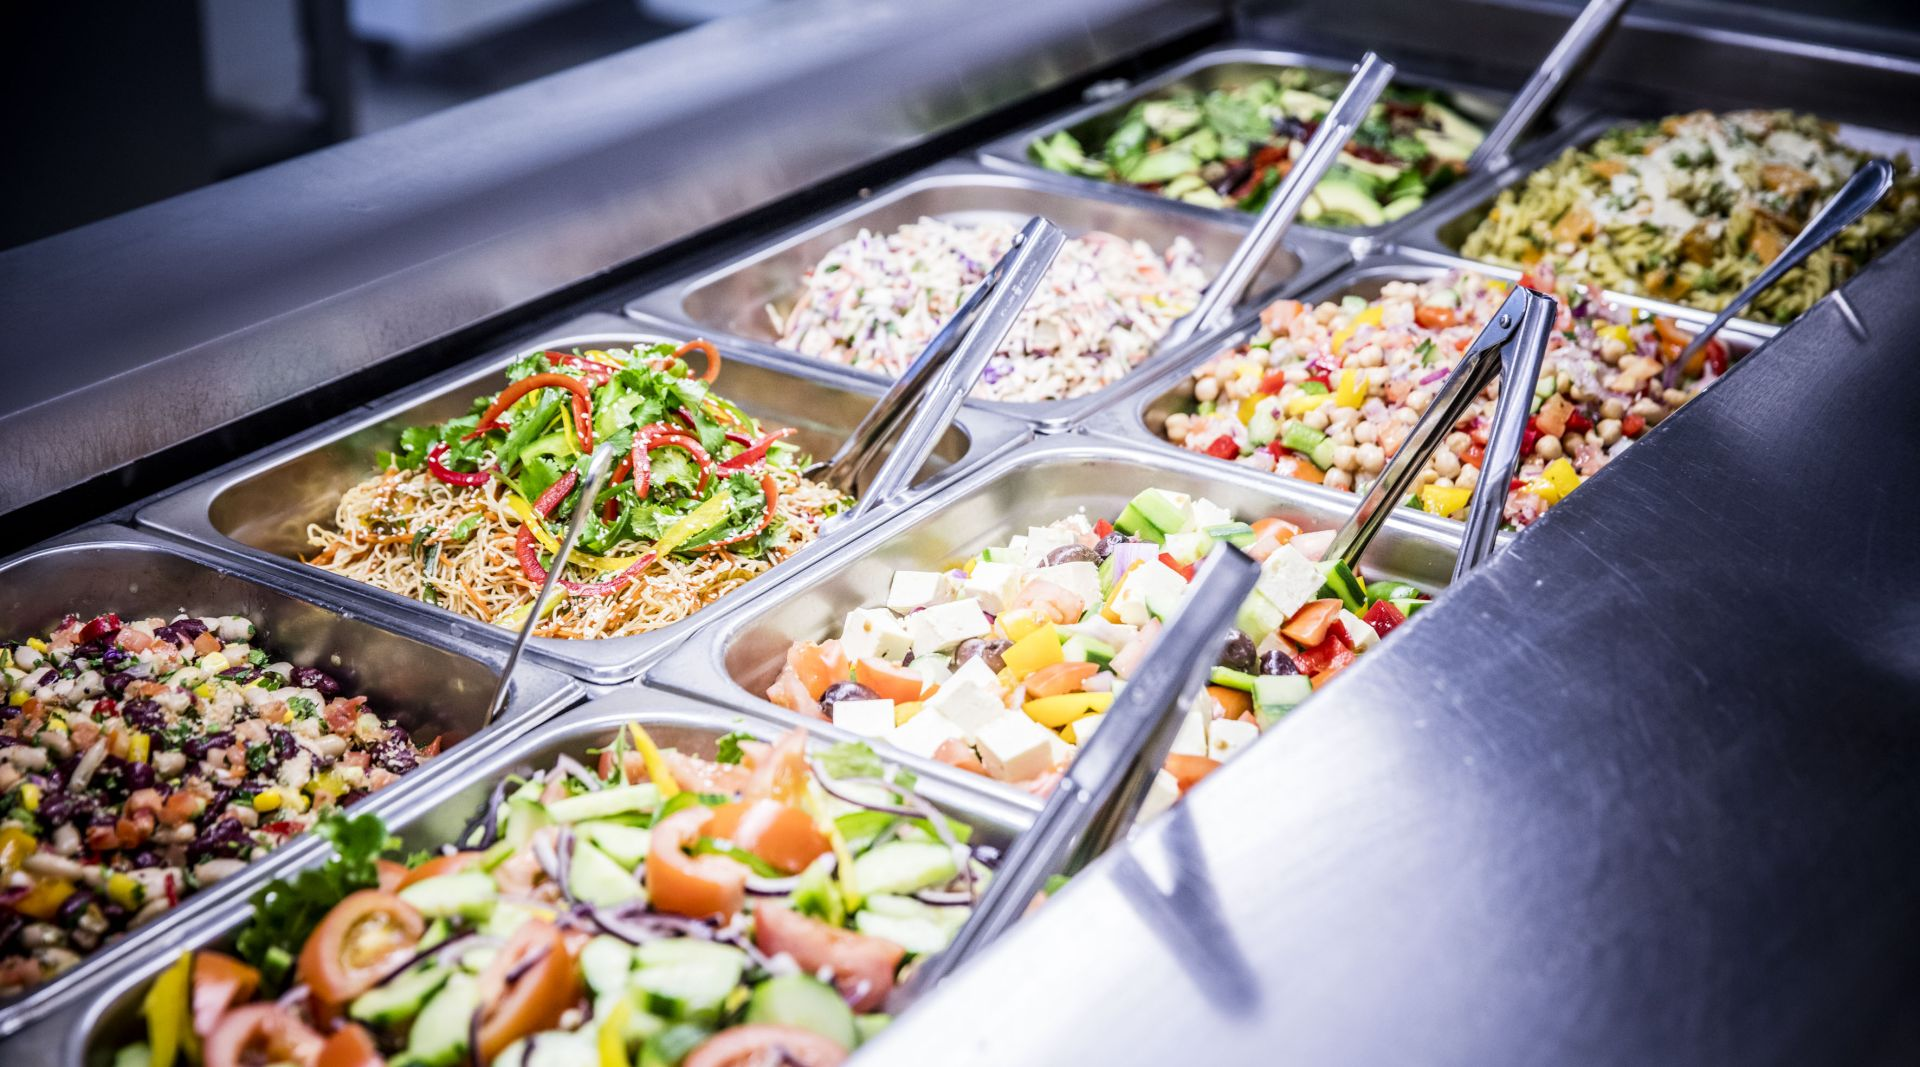 Salad bar for student meals in the Dining Hall